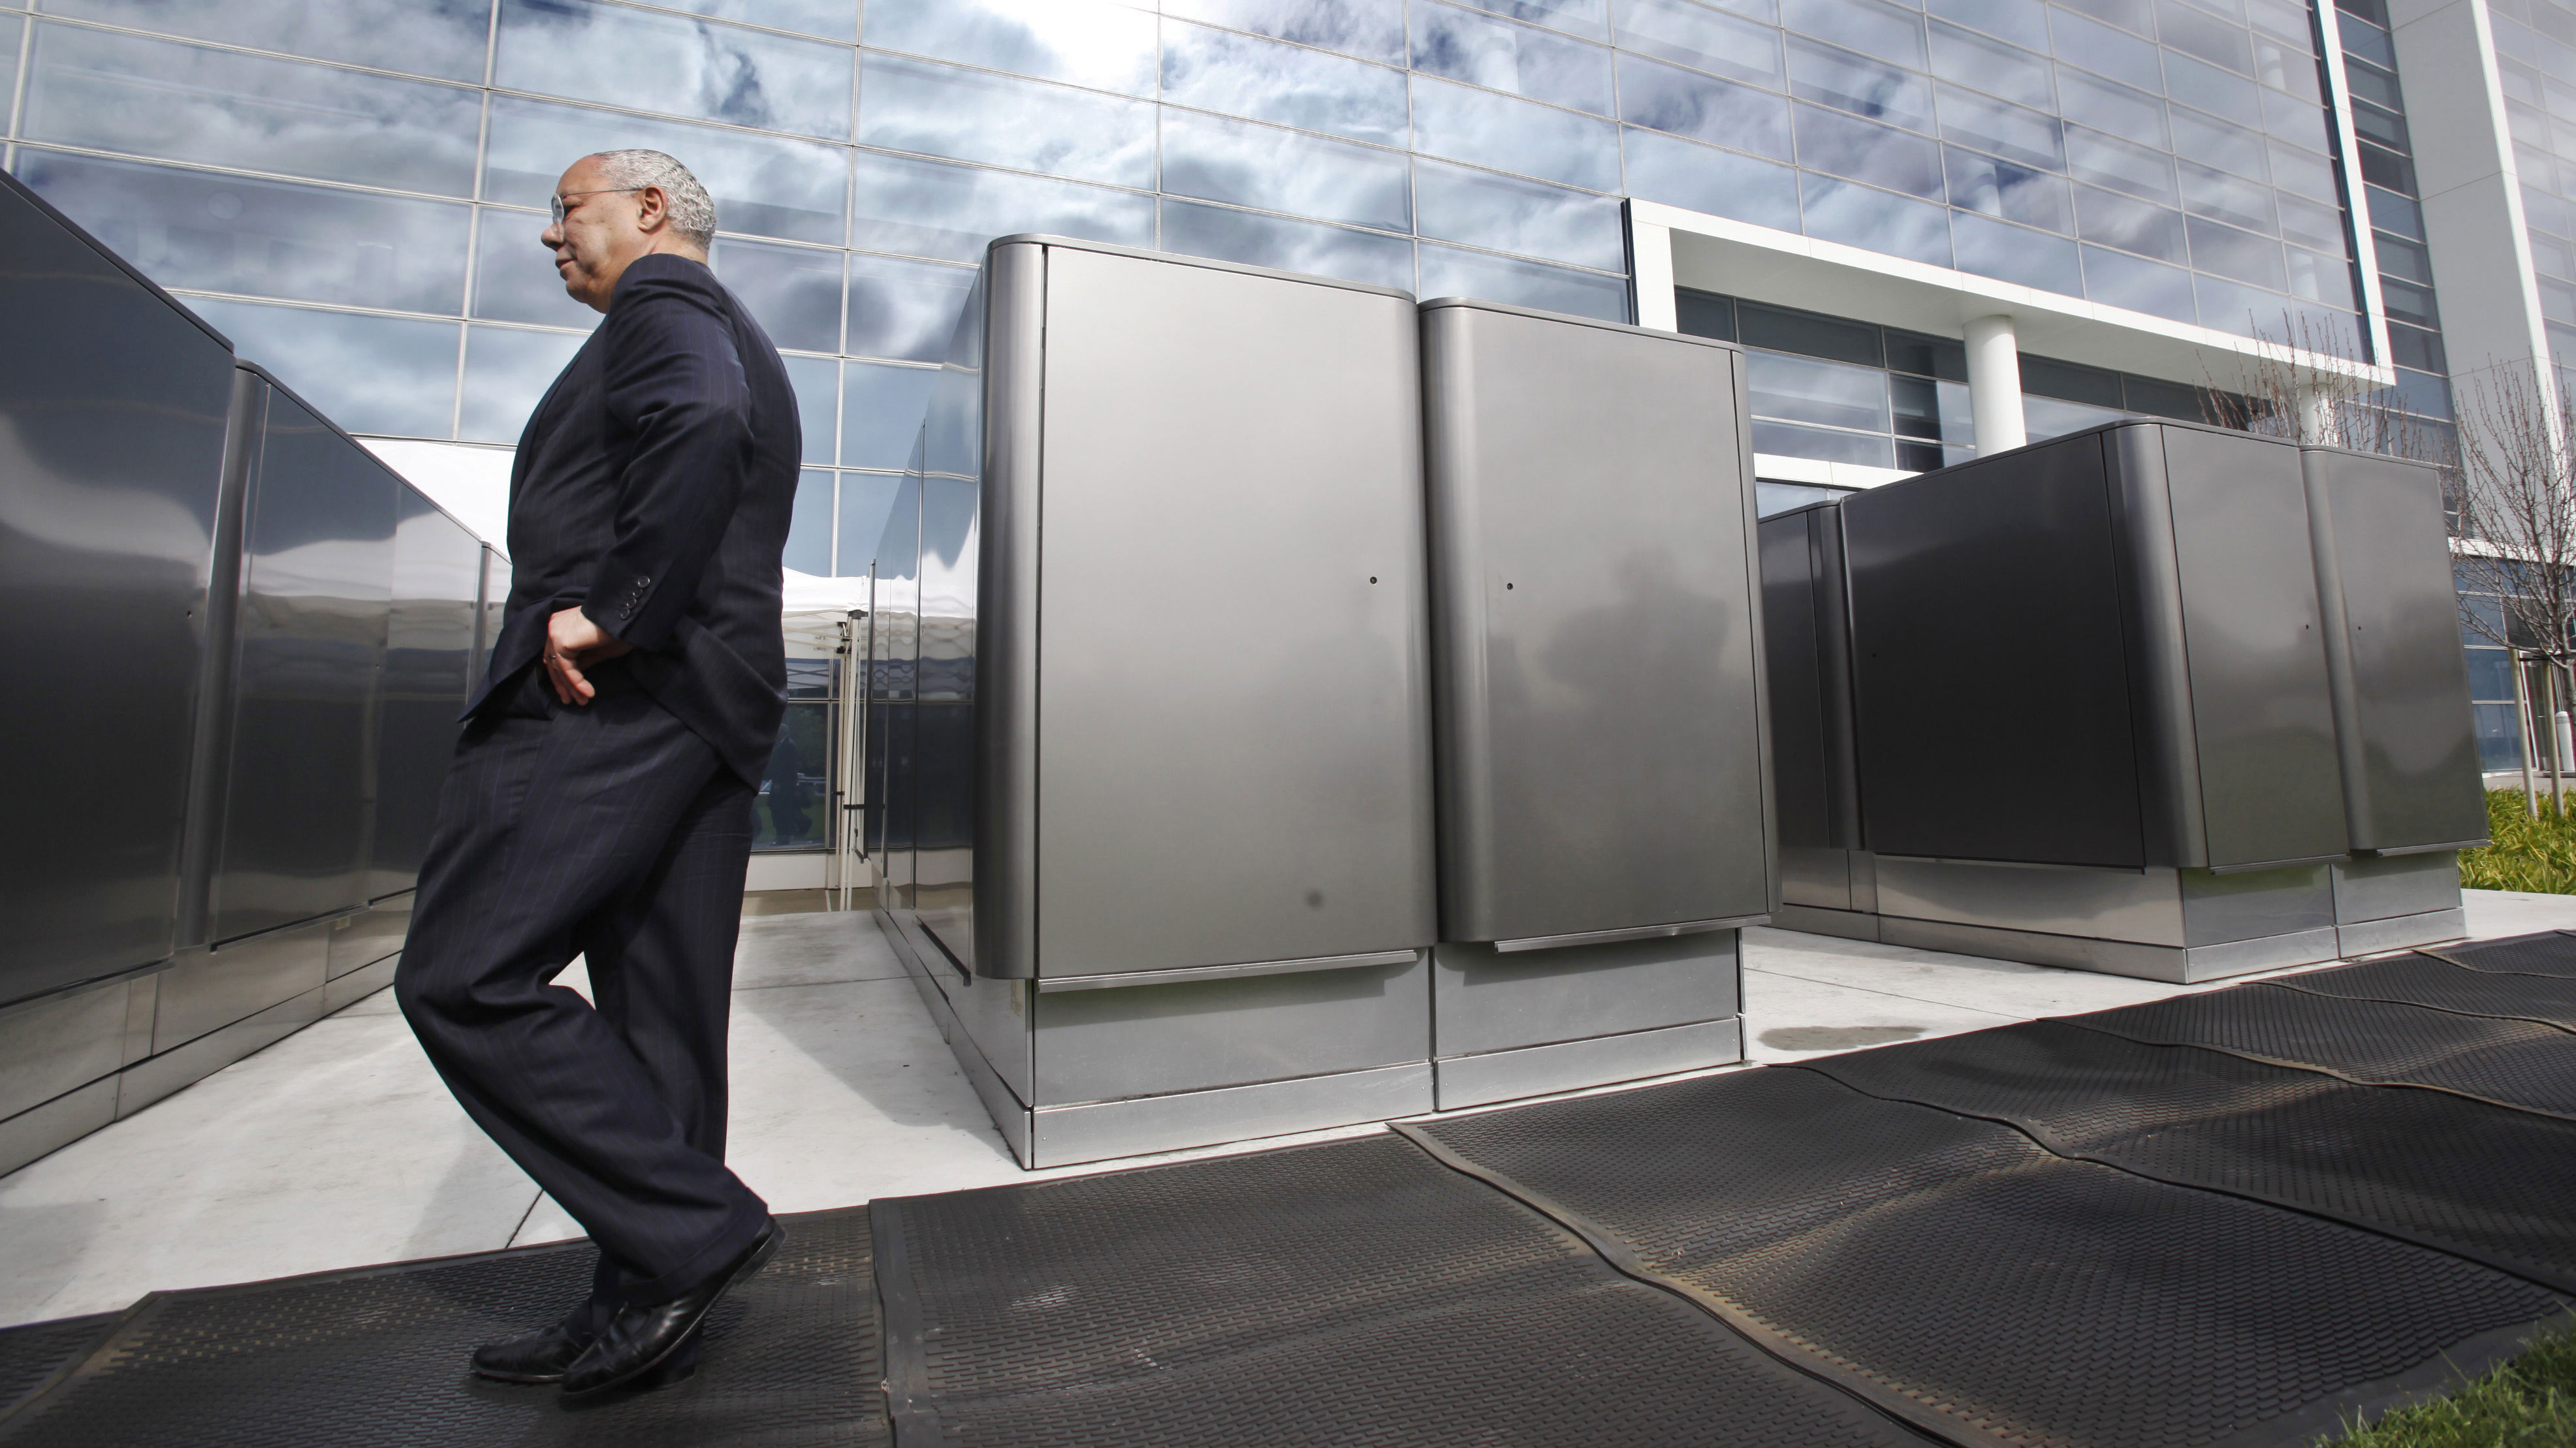 Former Sec. of State Gen. Colin Powell, who serves on the board of Bloom Energy, looks at the Bloom Energy power server at eBay offices in San Jose, Calif., Wednesday, Feb. 24, 2010. Bloom Energy is a secretive Silicon Valley startup that is working on a new way to produce cleaner energy. Its first product is a huge box of fuel cells that it hopes will allow homes and businesses to generate their own electricity. (AP Photo/Paul Sakuma)